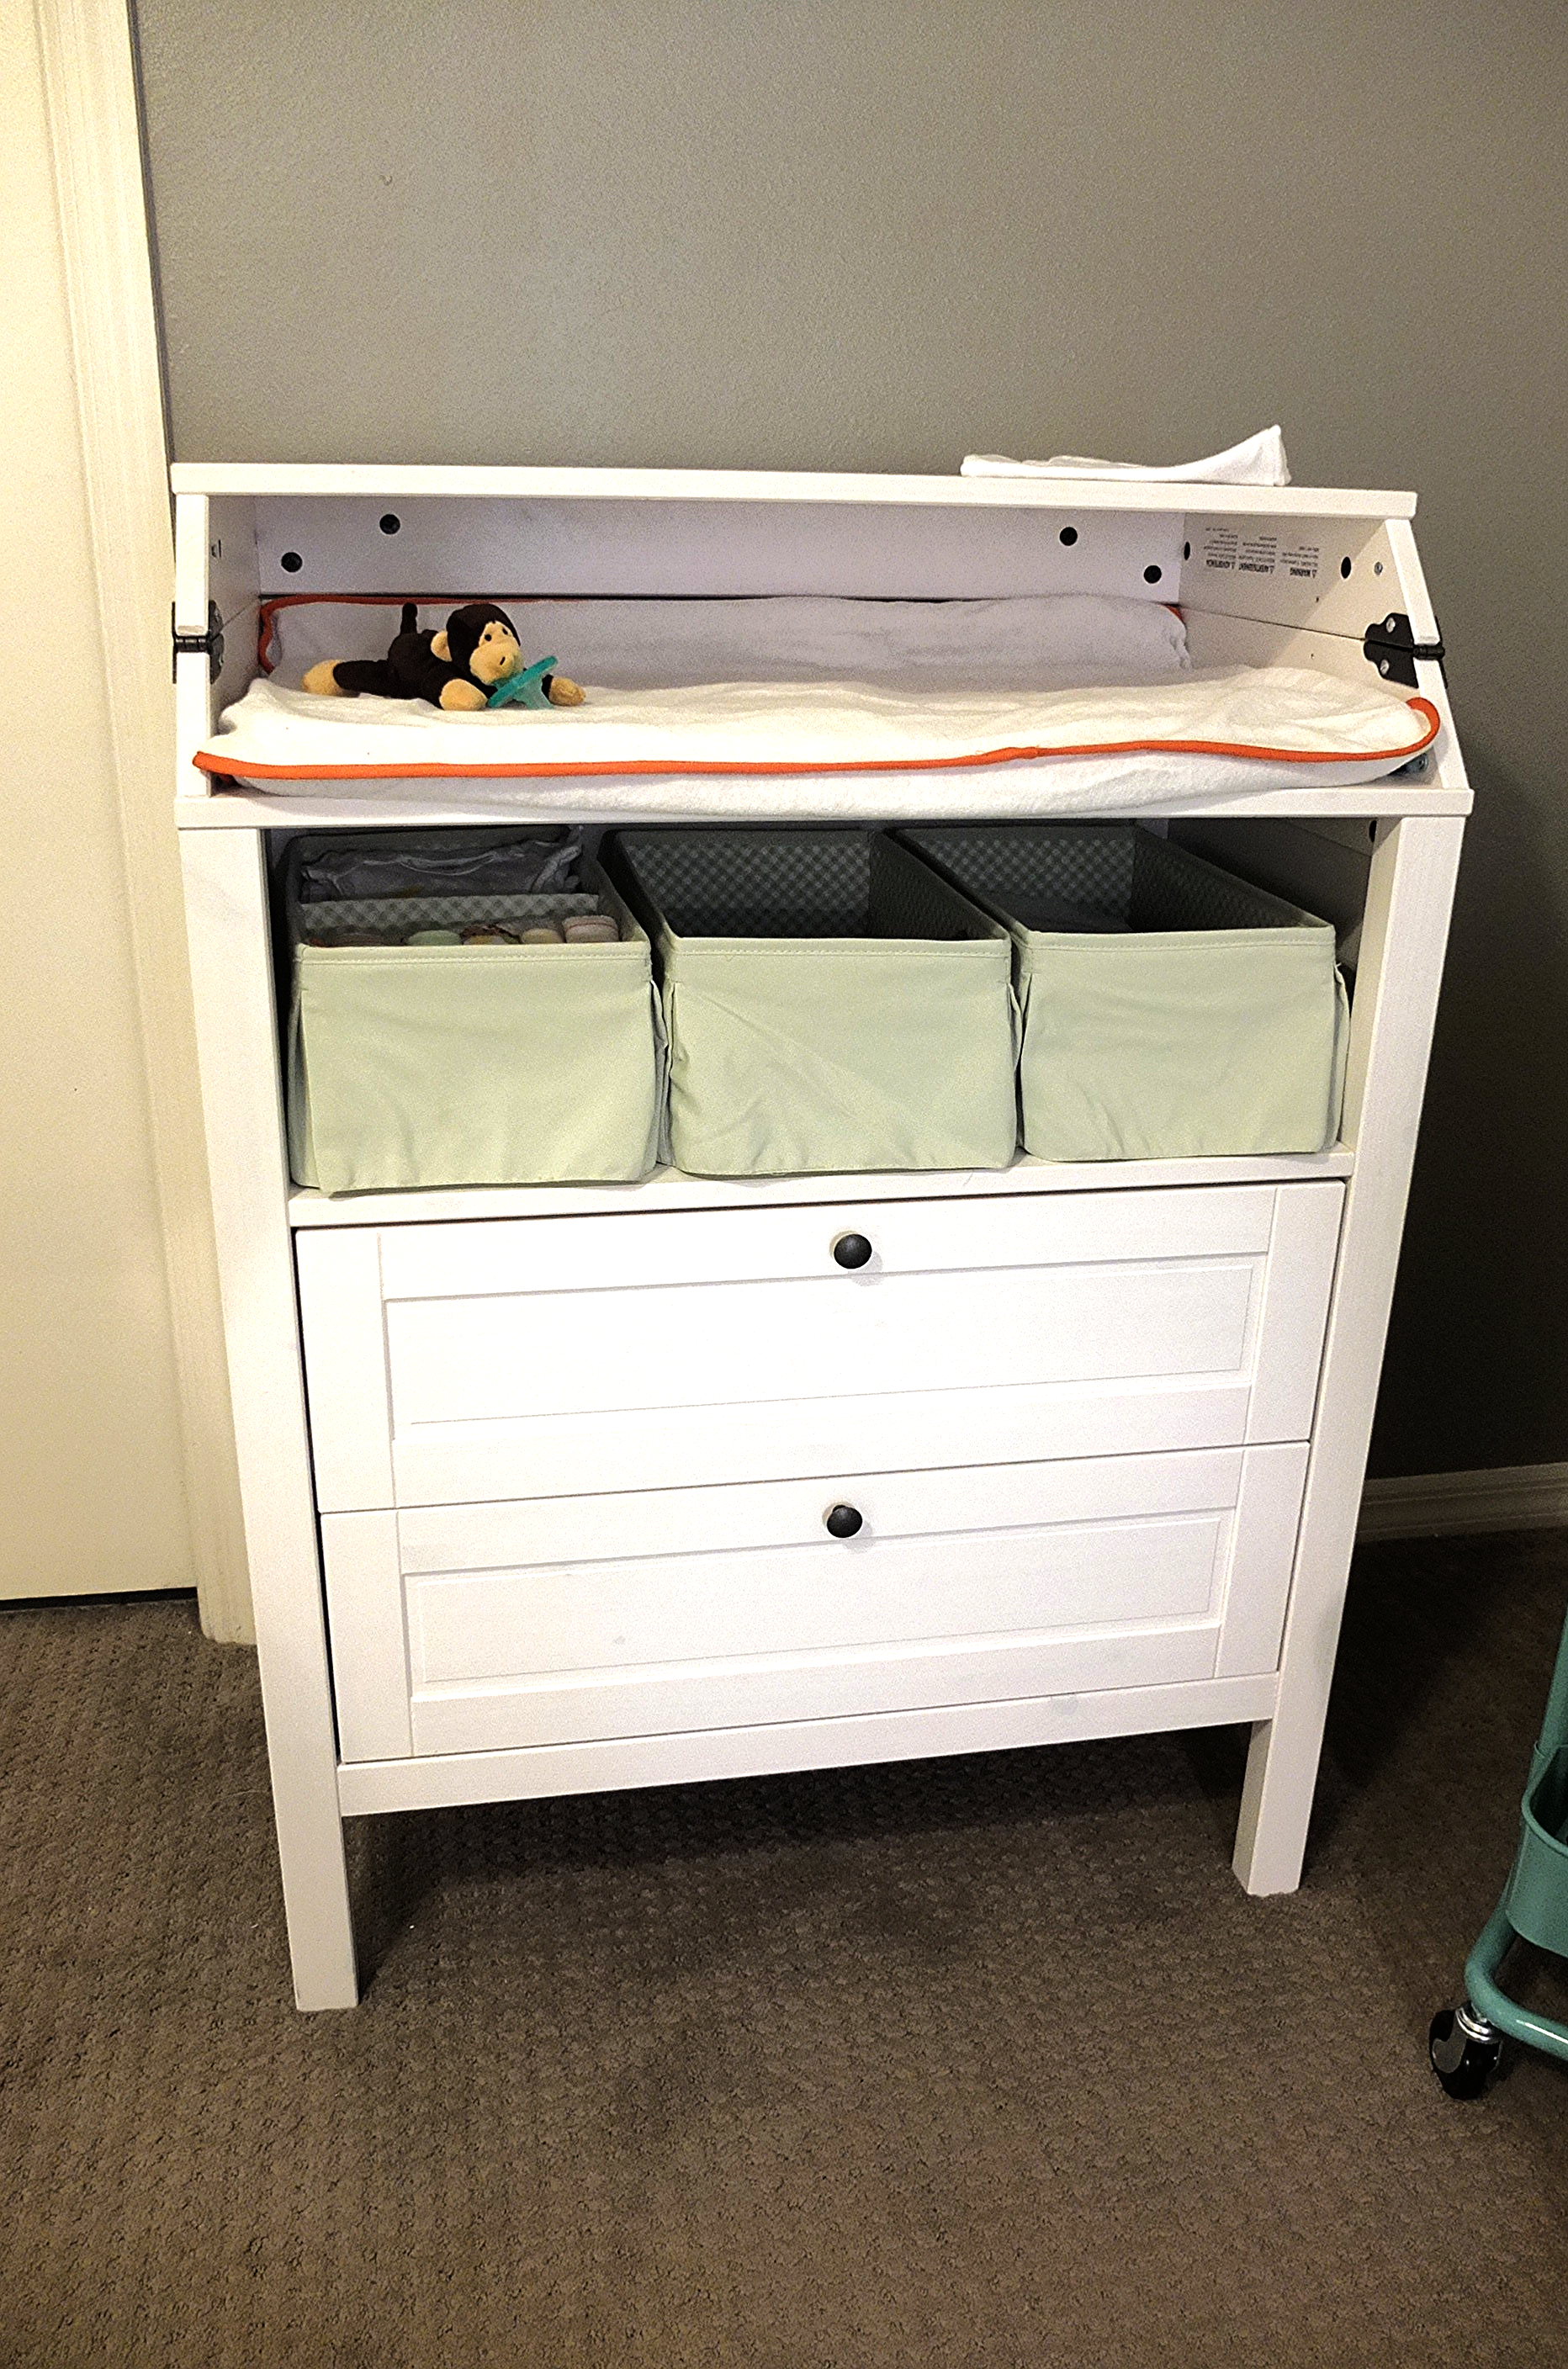 Changing Table Chest Of Drawers Sundvik Changing Table Has Open Storage Up Top So You Can Reach